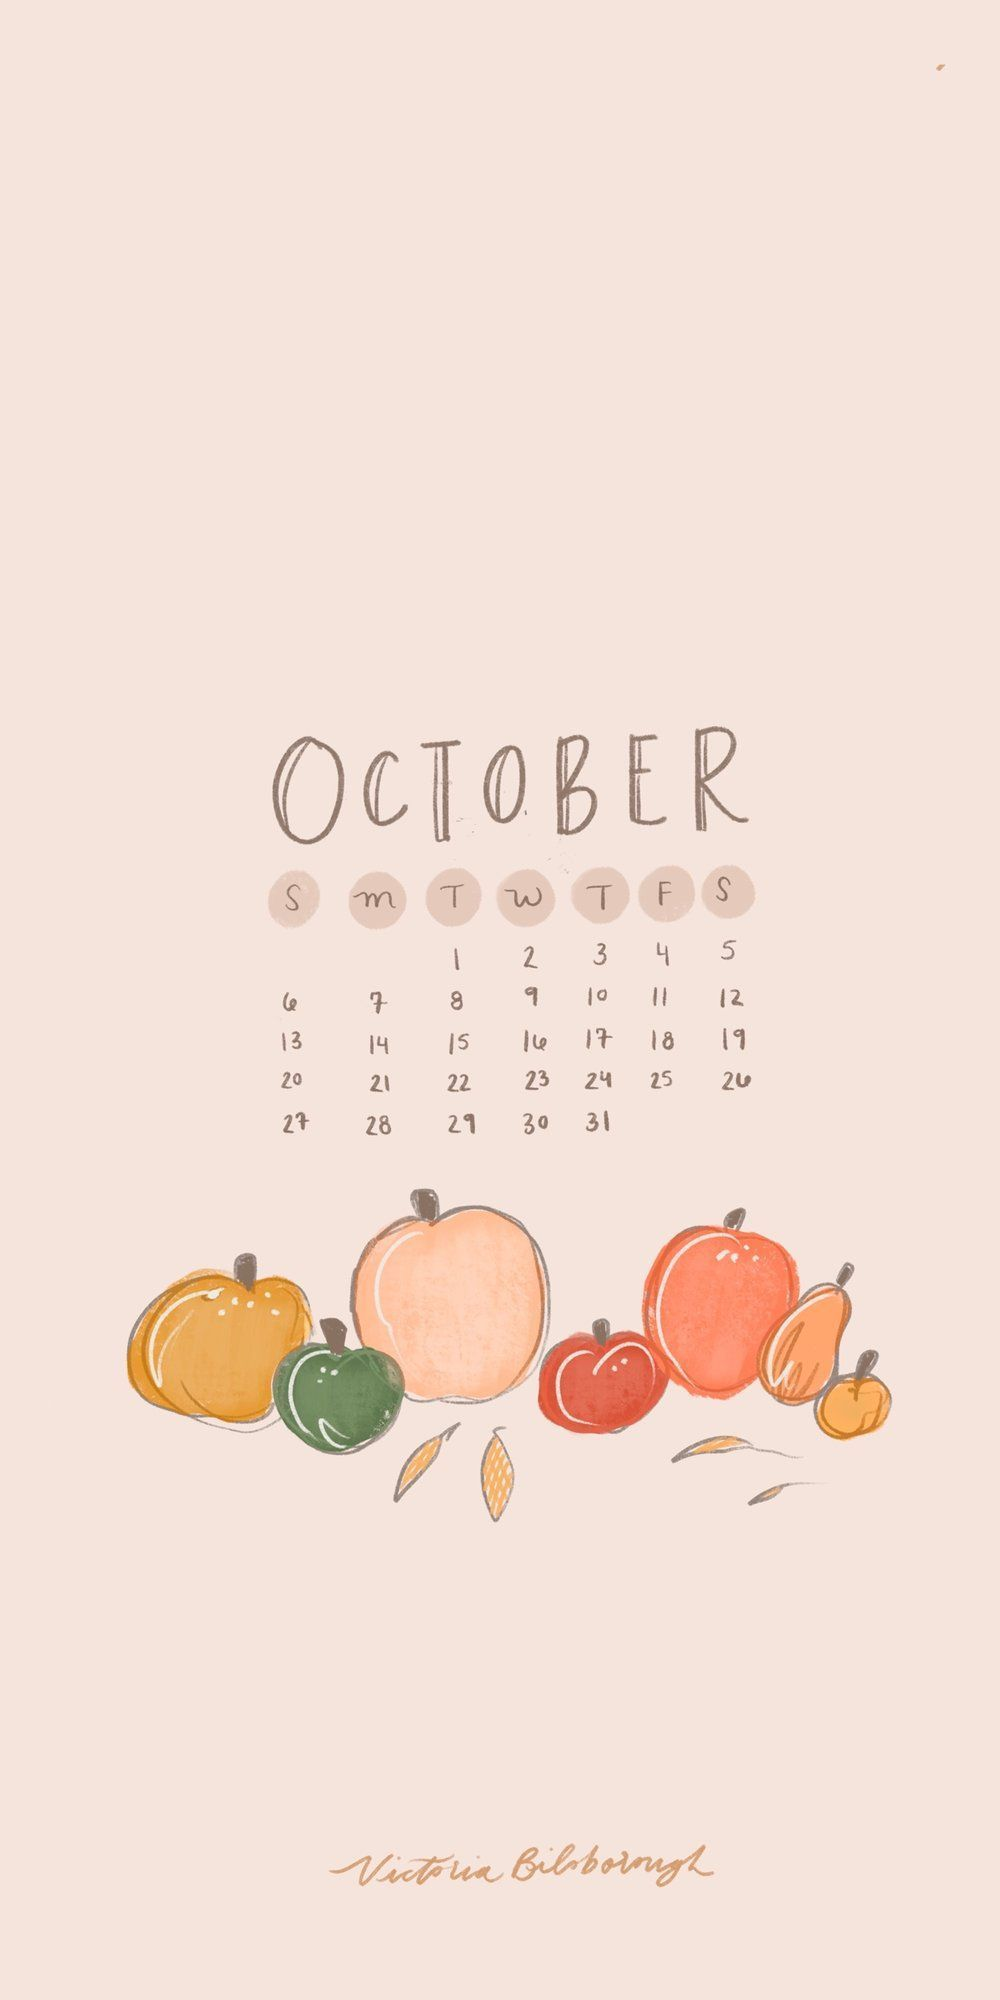 October 2019 | Free Wallpapers — Victoria Bilsborough #octoberwallpaper Victoria Bilsborough | October 2019 Phone Wallpapers #octoberwallpaperiphone October 2019 | Free Wallpapers — Victoria Bilsborough #octoberwallpaper Victoria Bilsborough | October 2019 Phone Wallpapers #octoberwallpaper